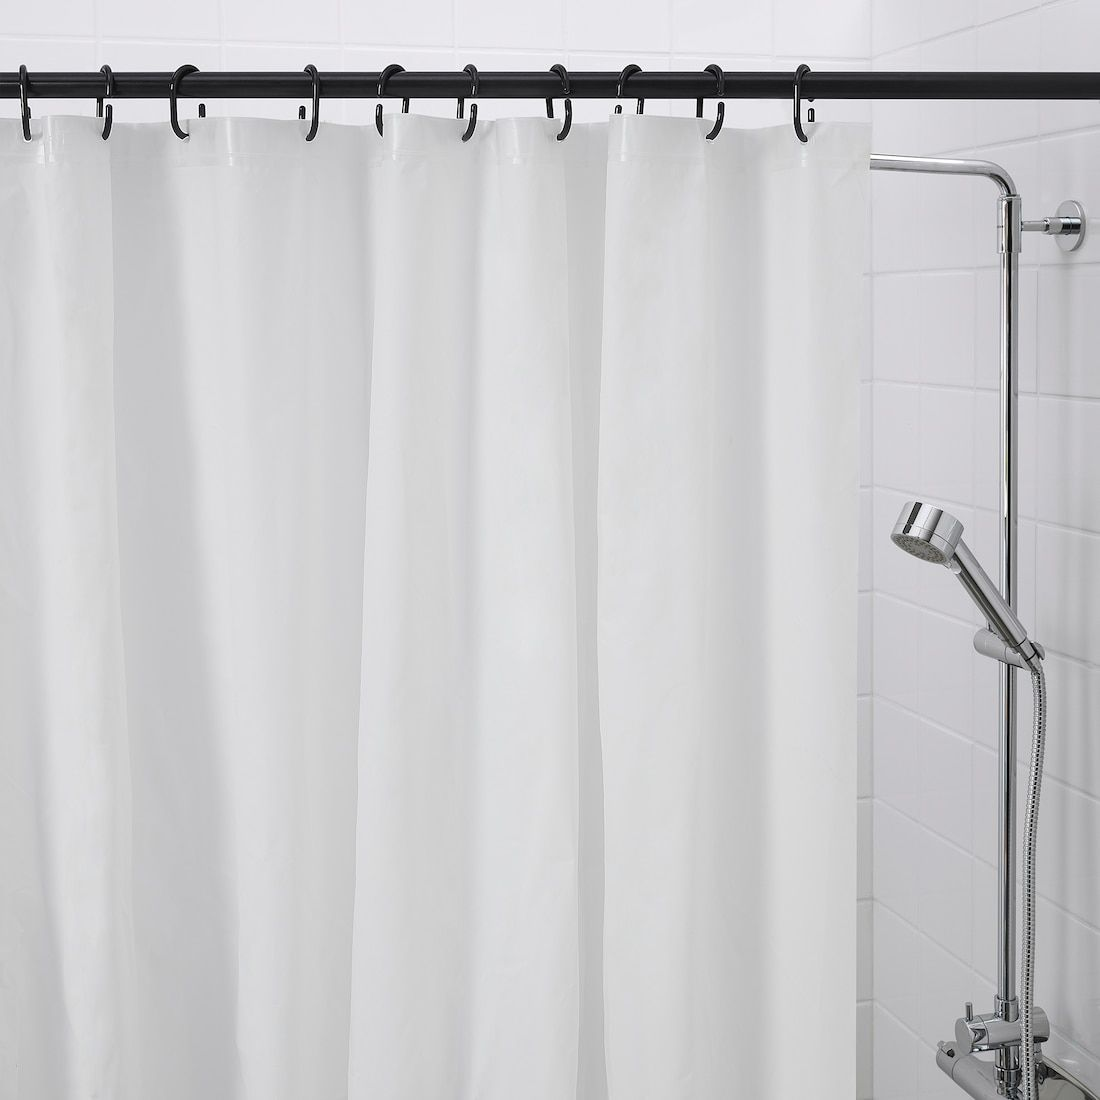 Ringsjon Shower Curtain Rings Black In 2020 Black Shower Curtains Shower Curtain Rings Shower Curtain